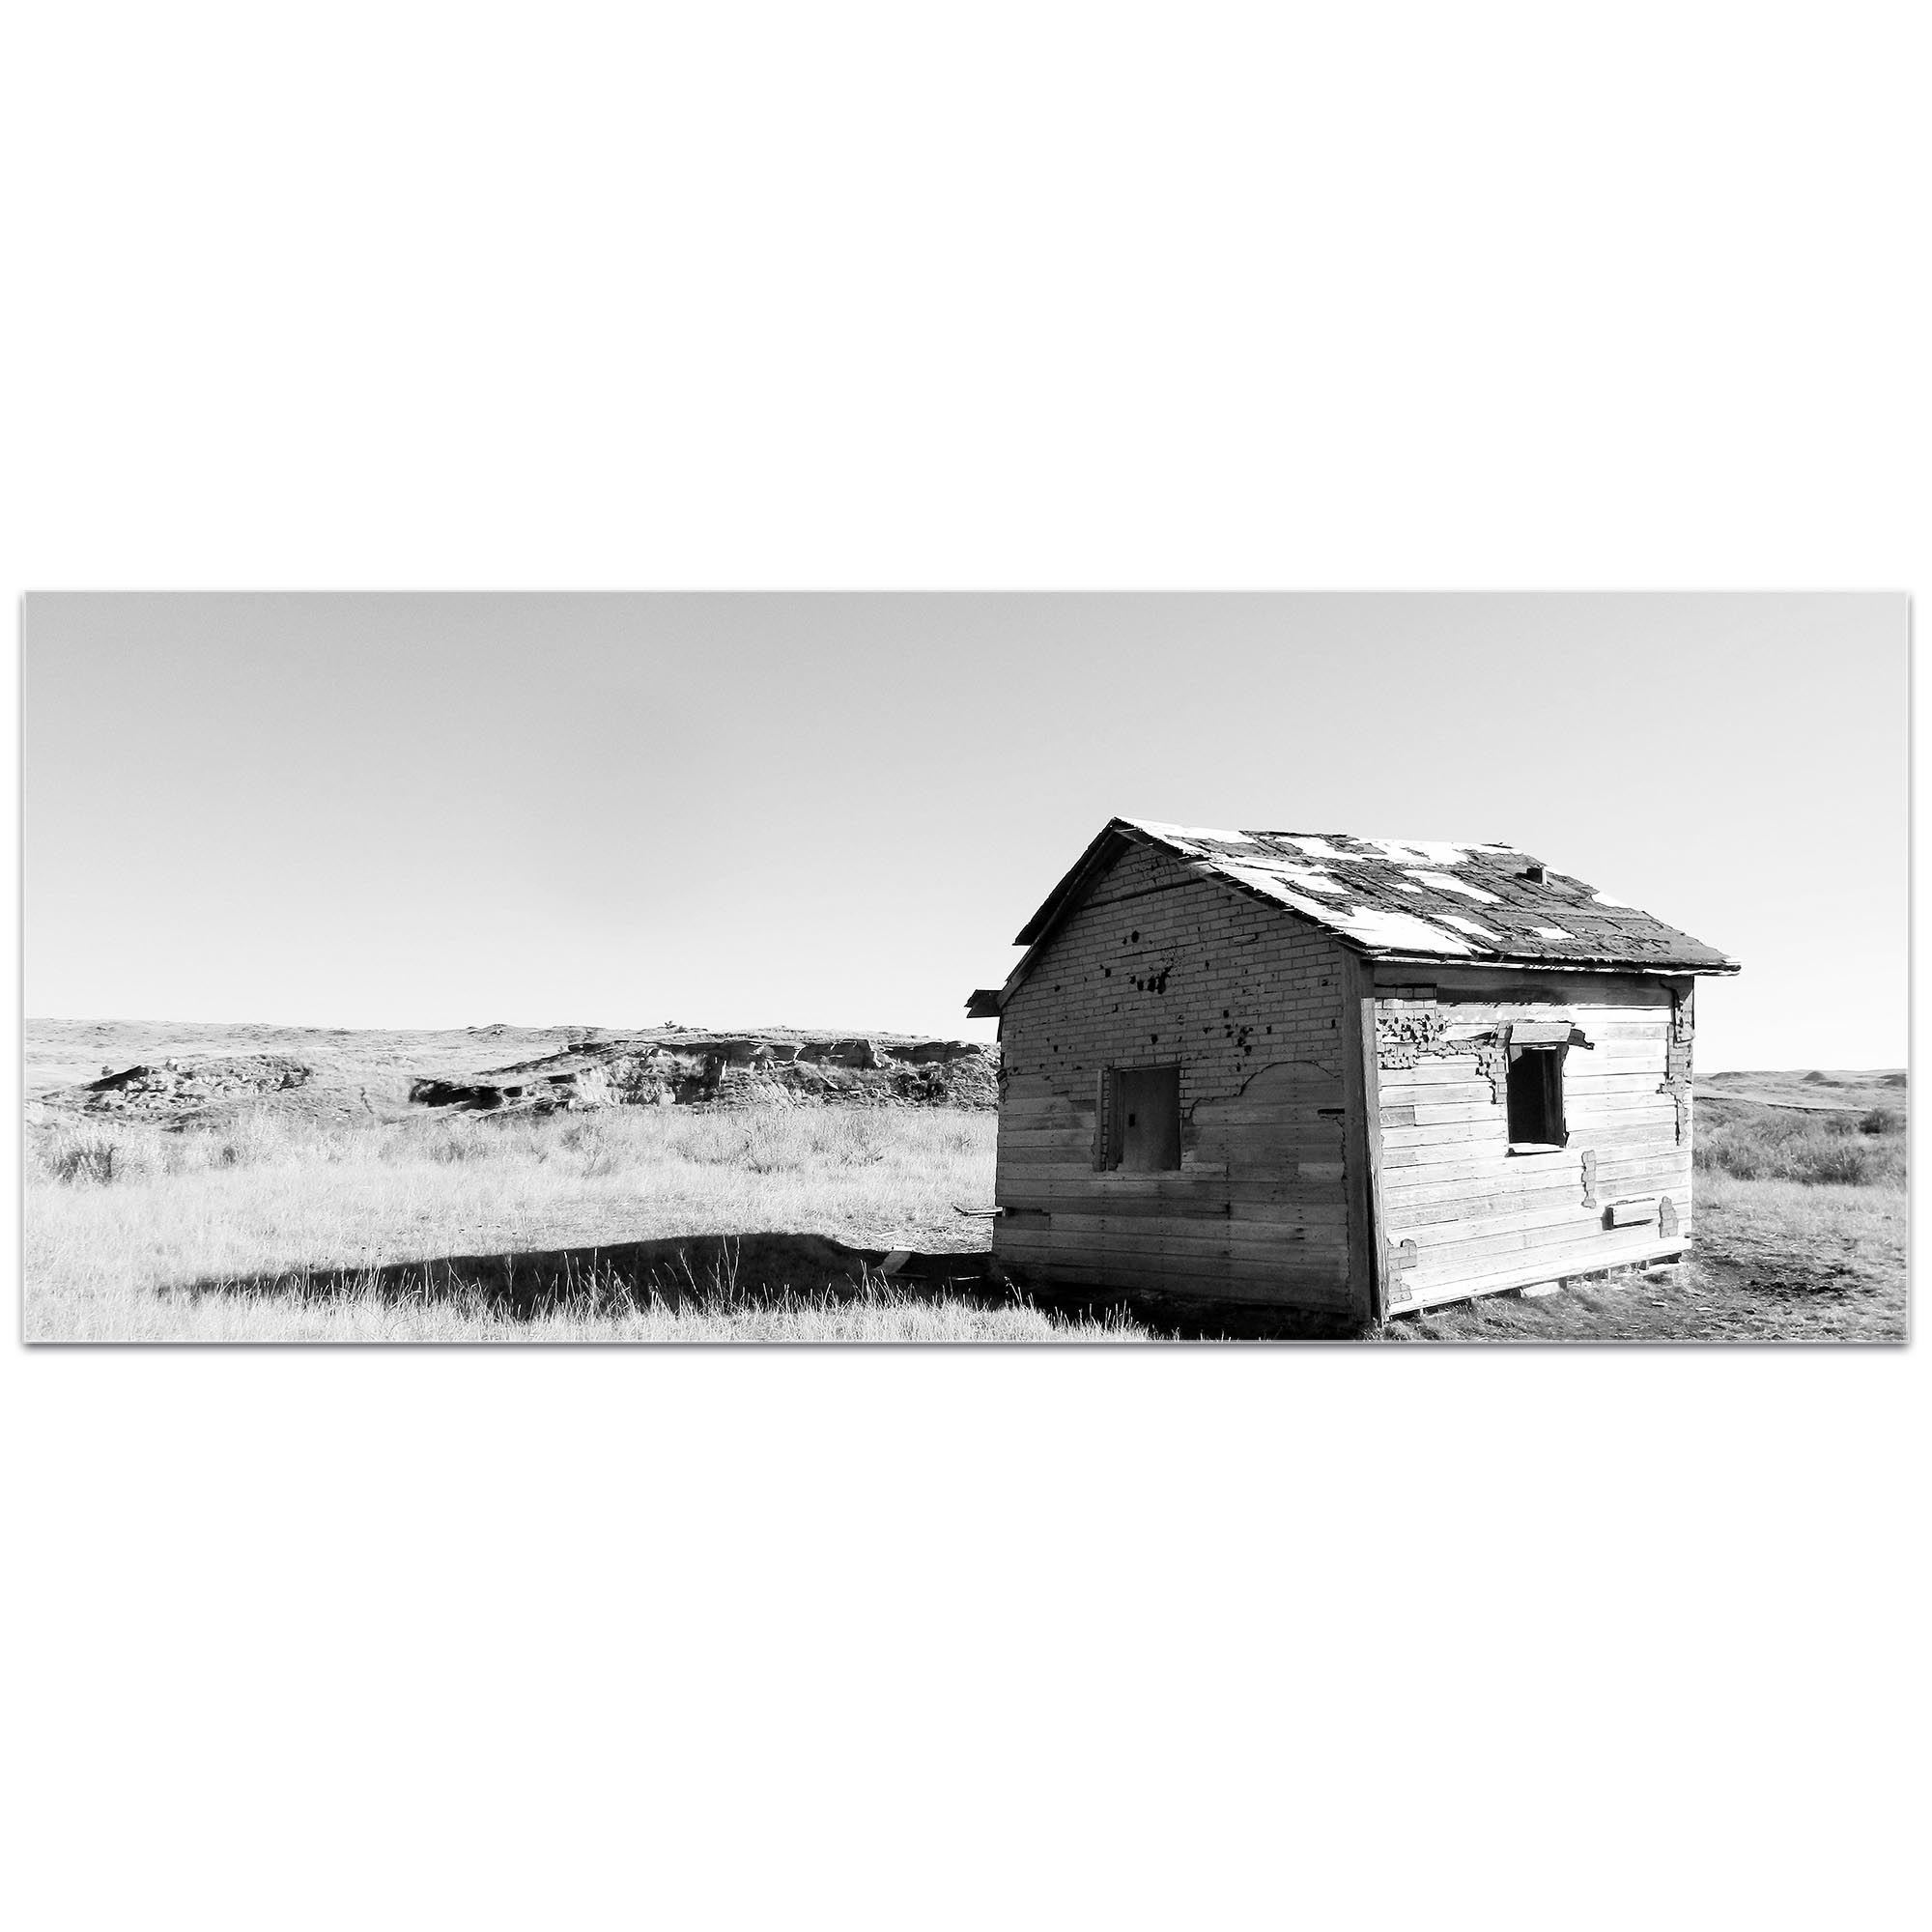 Western Wall Art 'The Shack' - American West Decor on Metal or Plexiglass - Image 2